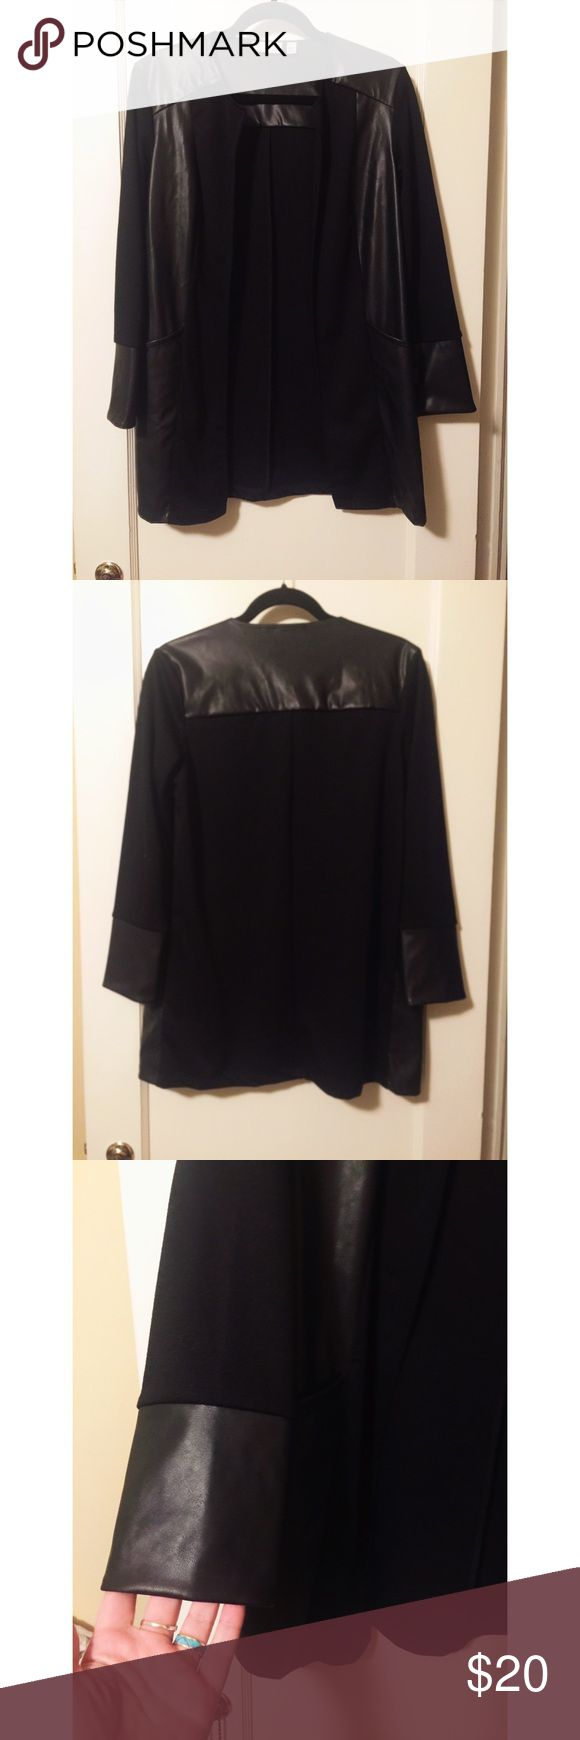 Leather Sleeved Cardigan Super cute long sleeved blazer/cardigan with leather sleeves and accents. Can easily be dressed up with heels and a blouse, or down with distressed denim and boots. Size is XS but fits more like a S or M. Only tried on, never worn. Nordstrom Jackets & Coats Blazers